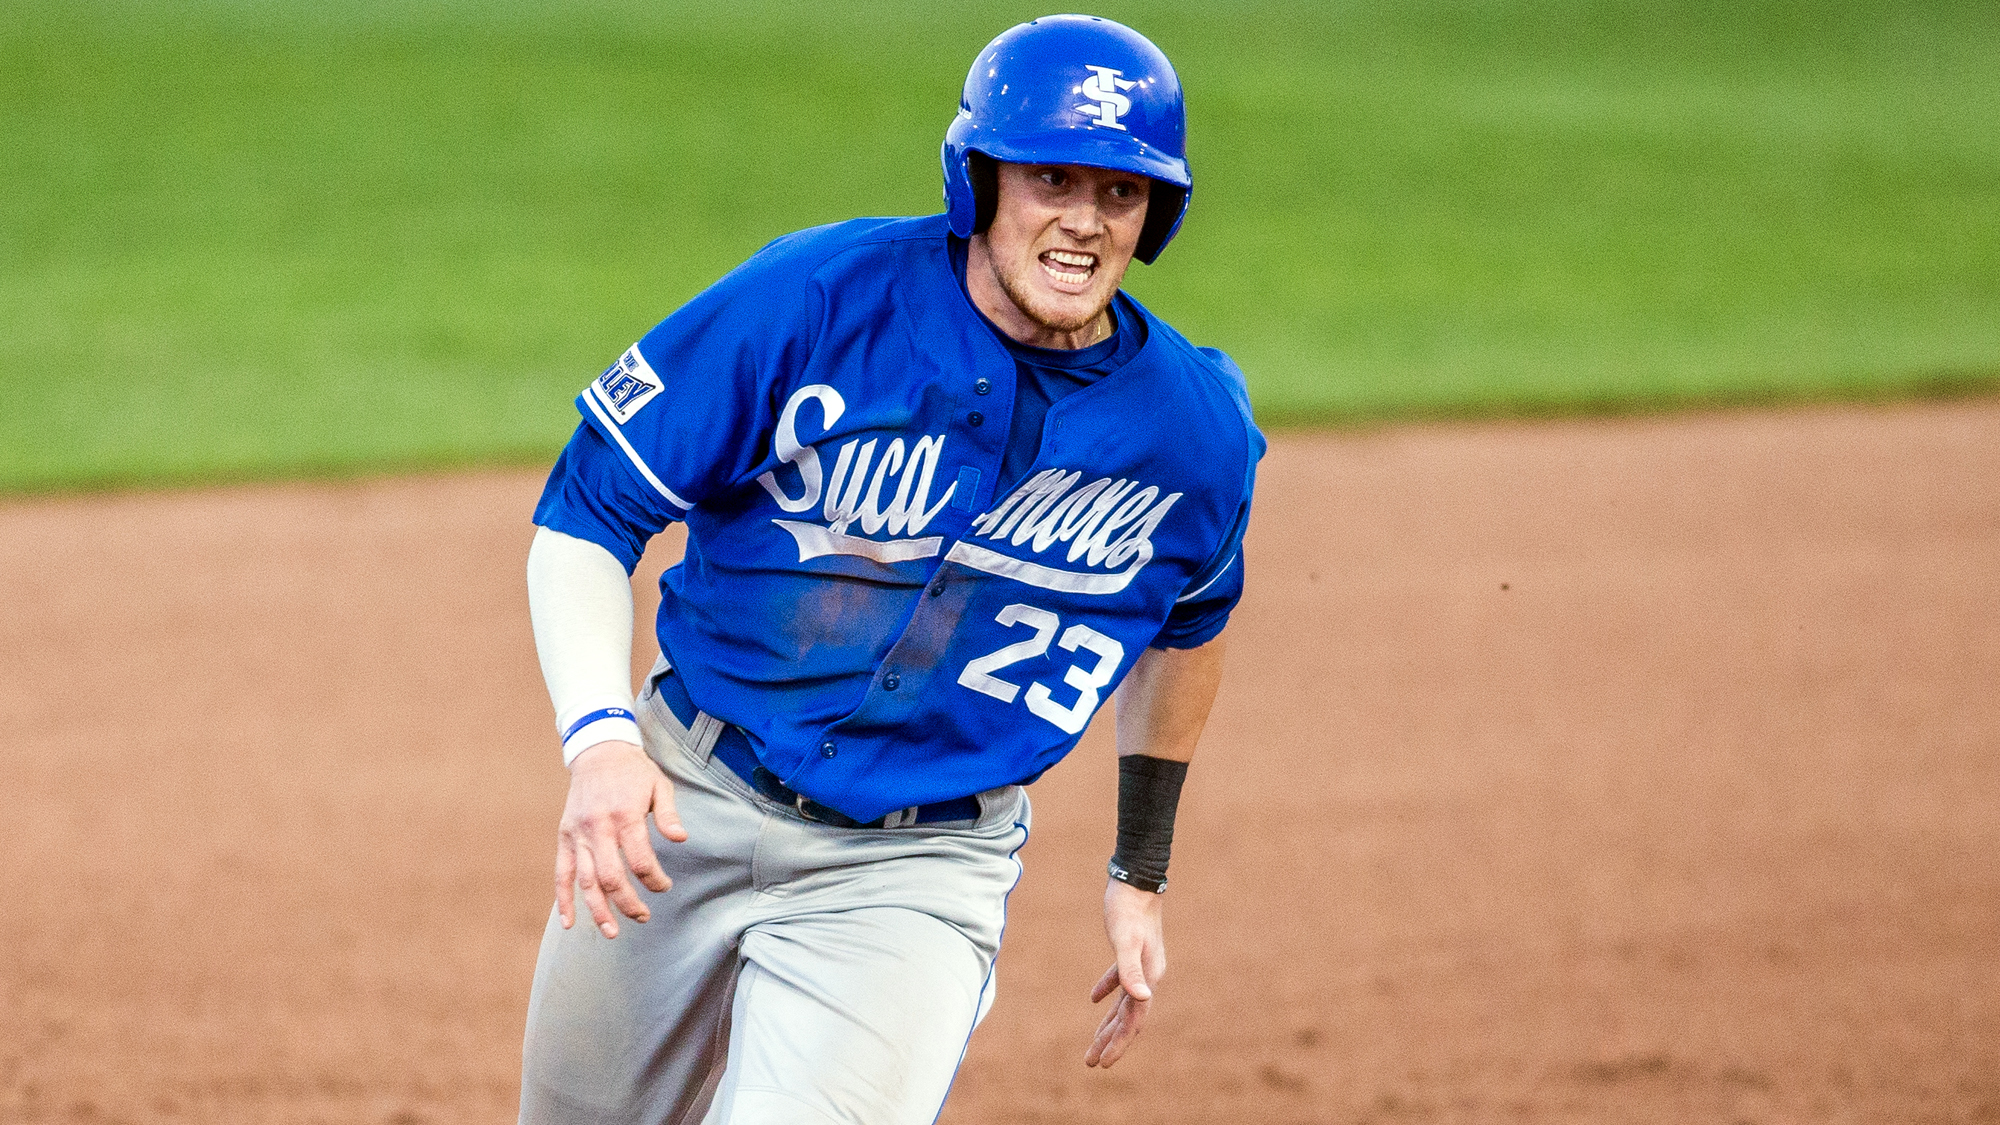 Okotoks Dawgs alum Dane Tofteland (Grande Prairie, Alta.) had five hits, including a home run, for the Indiana State Sycamores. Photo: Indiana State Athletics